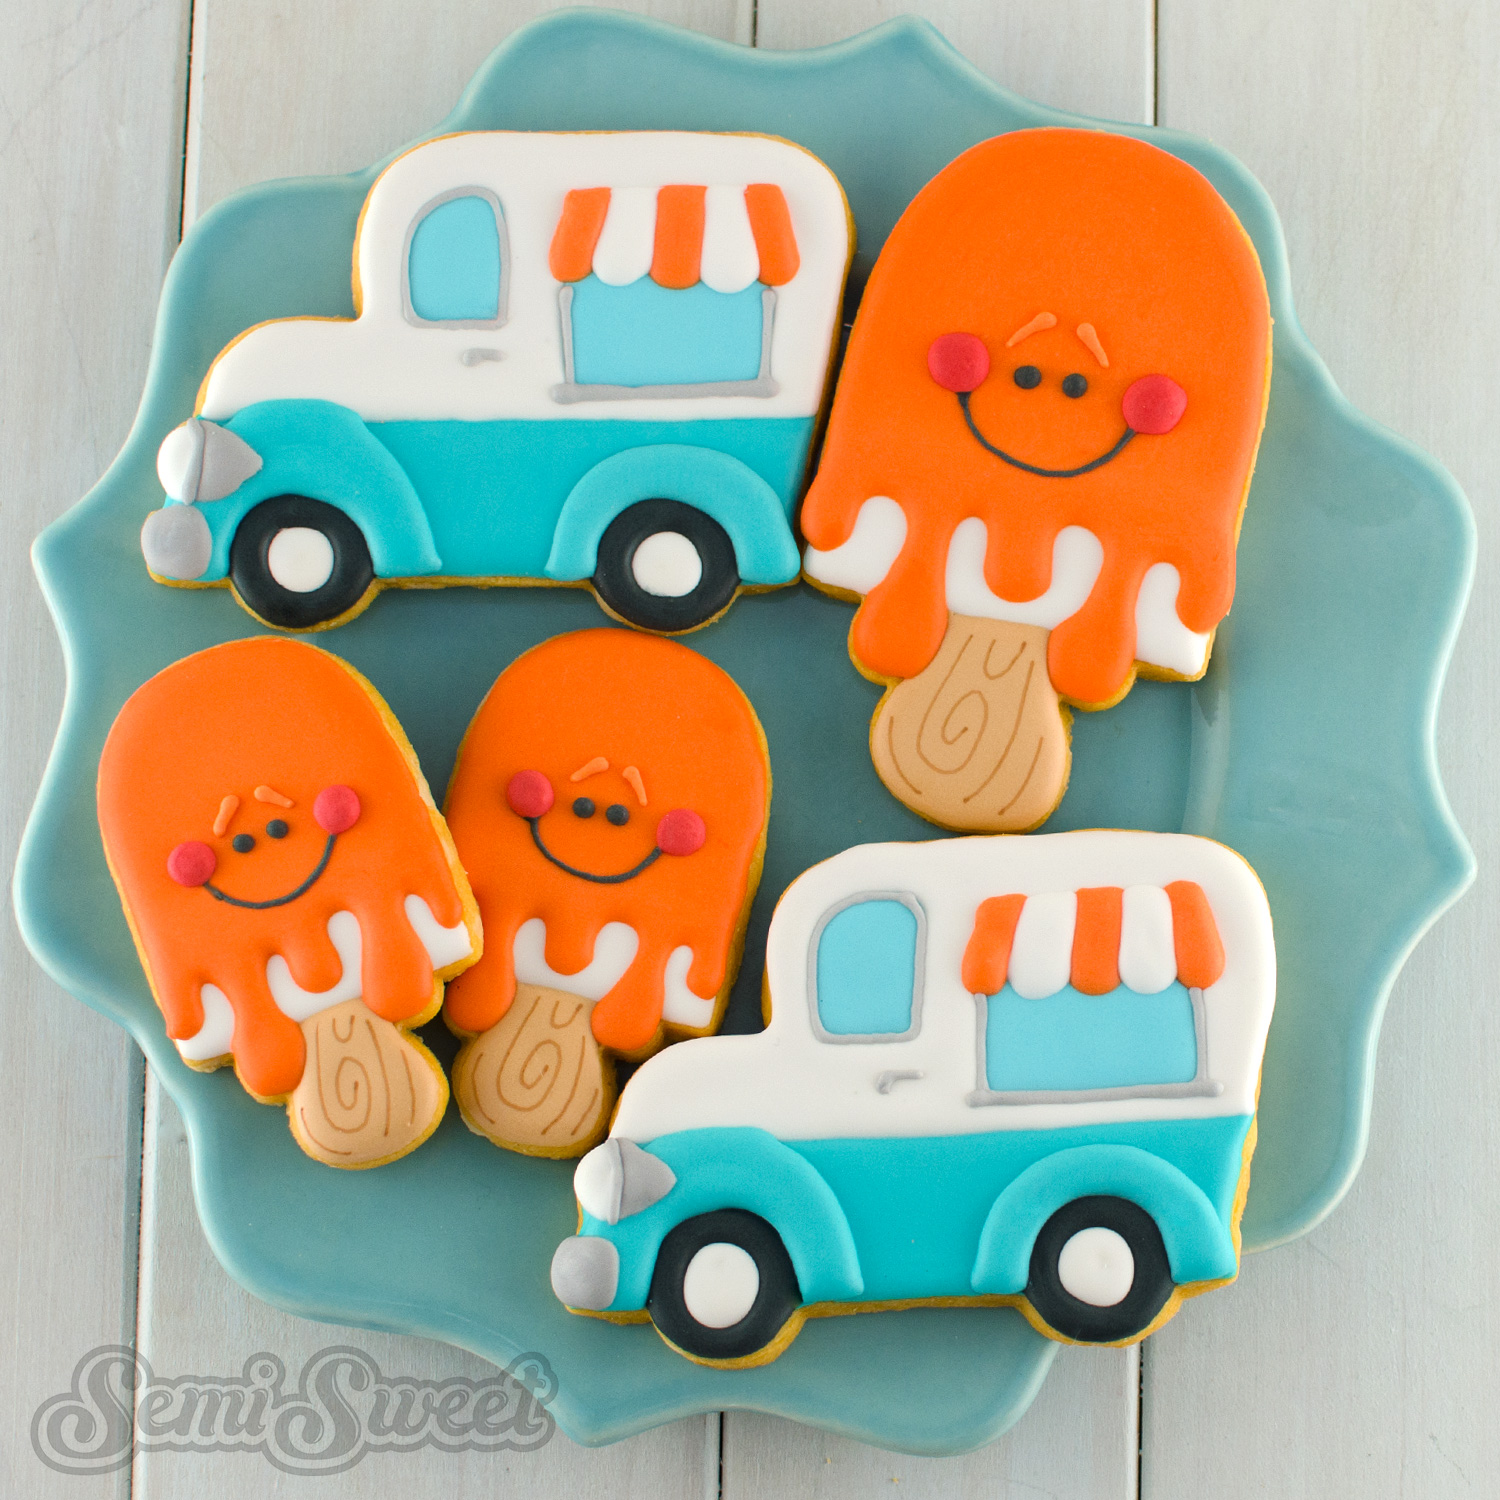 How to Make Ice Cream Truck Cookies